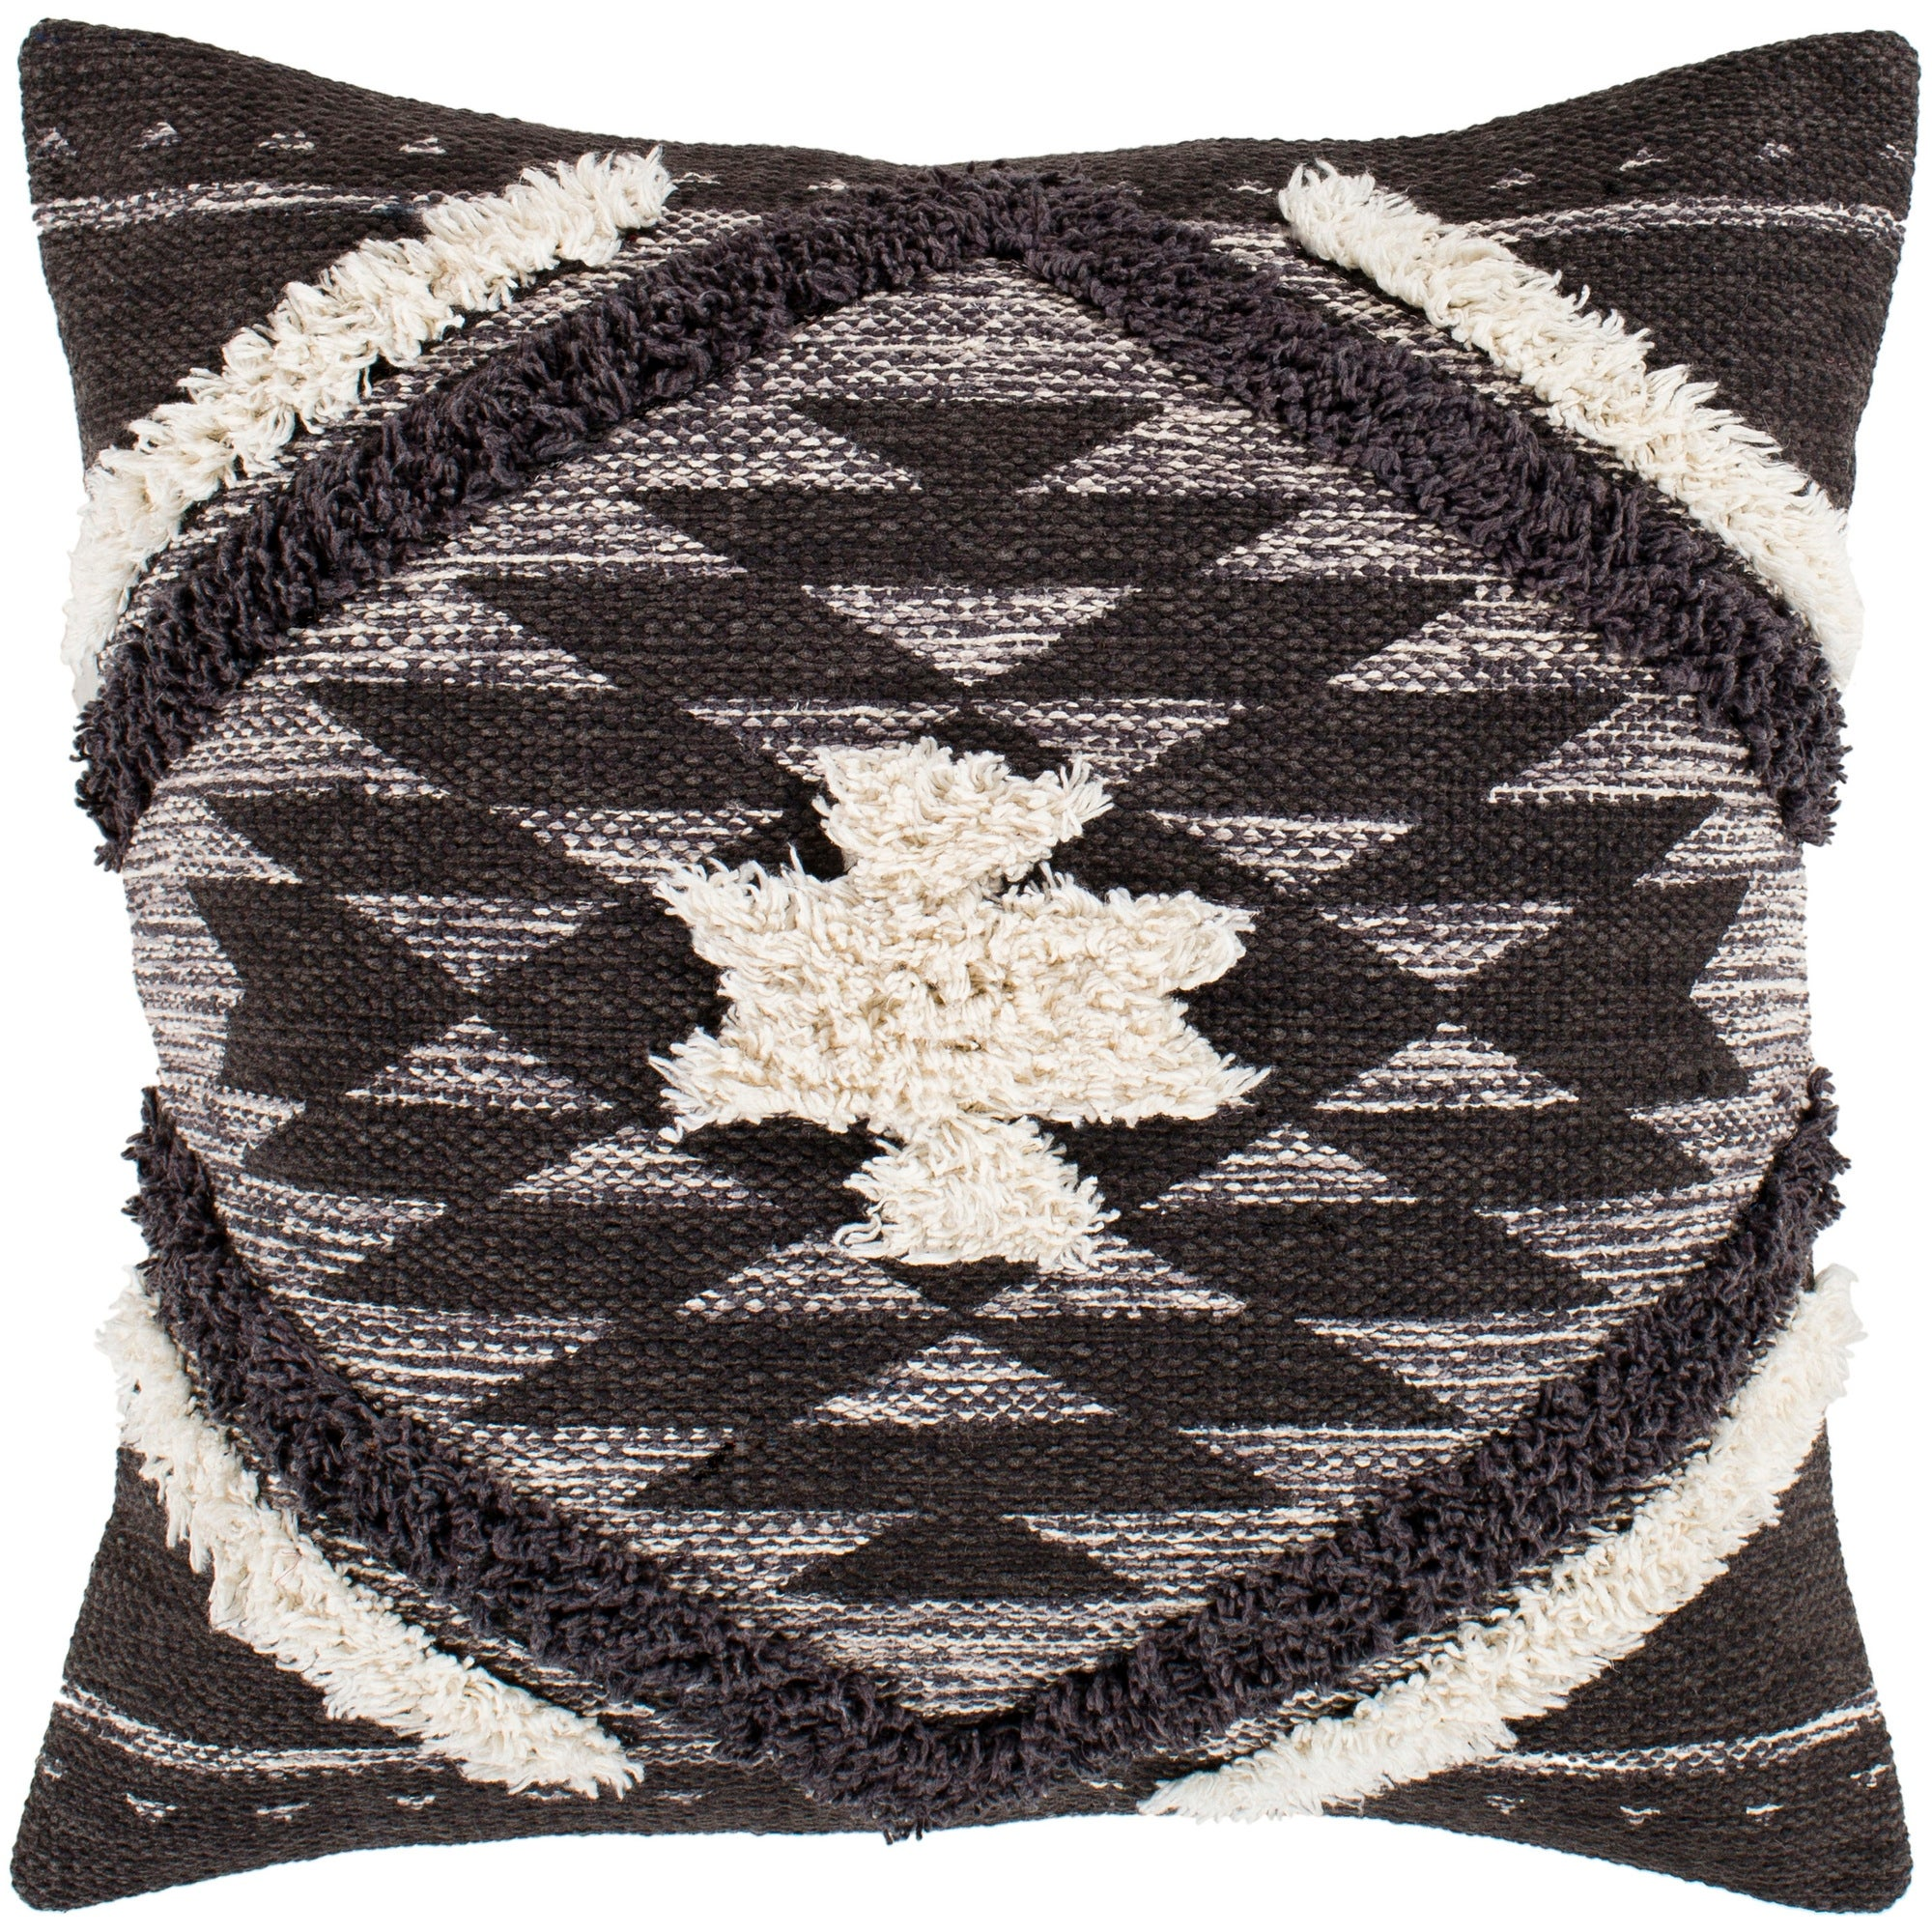 Katherine Black Cream Boho Shag Throw Pillow Cover 20 X 20 On Sale Overstock 23144532